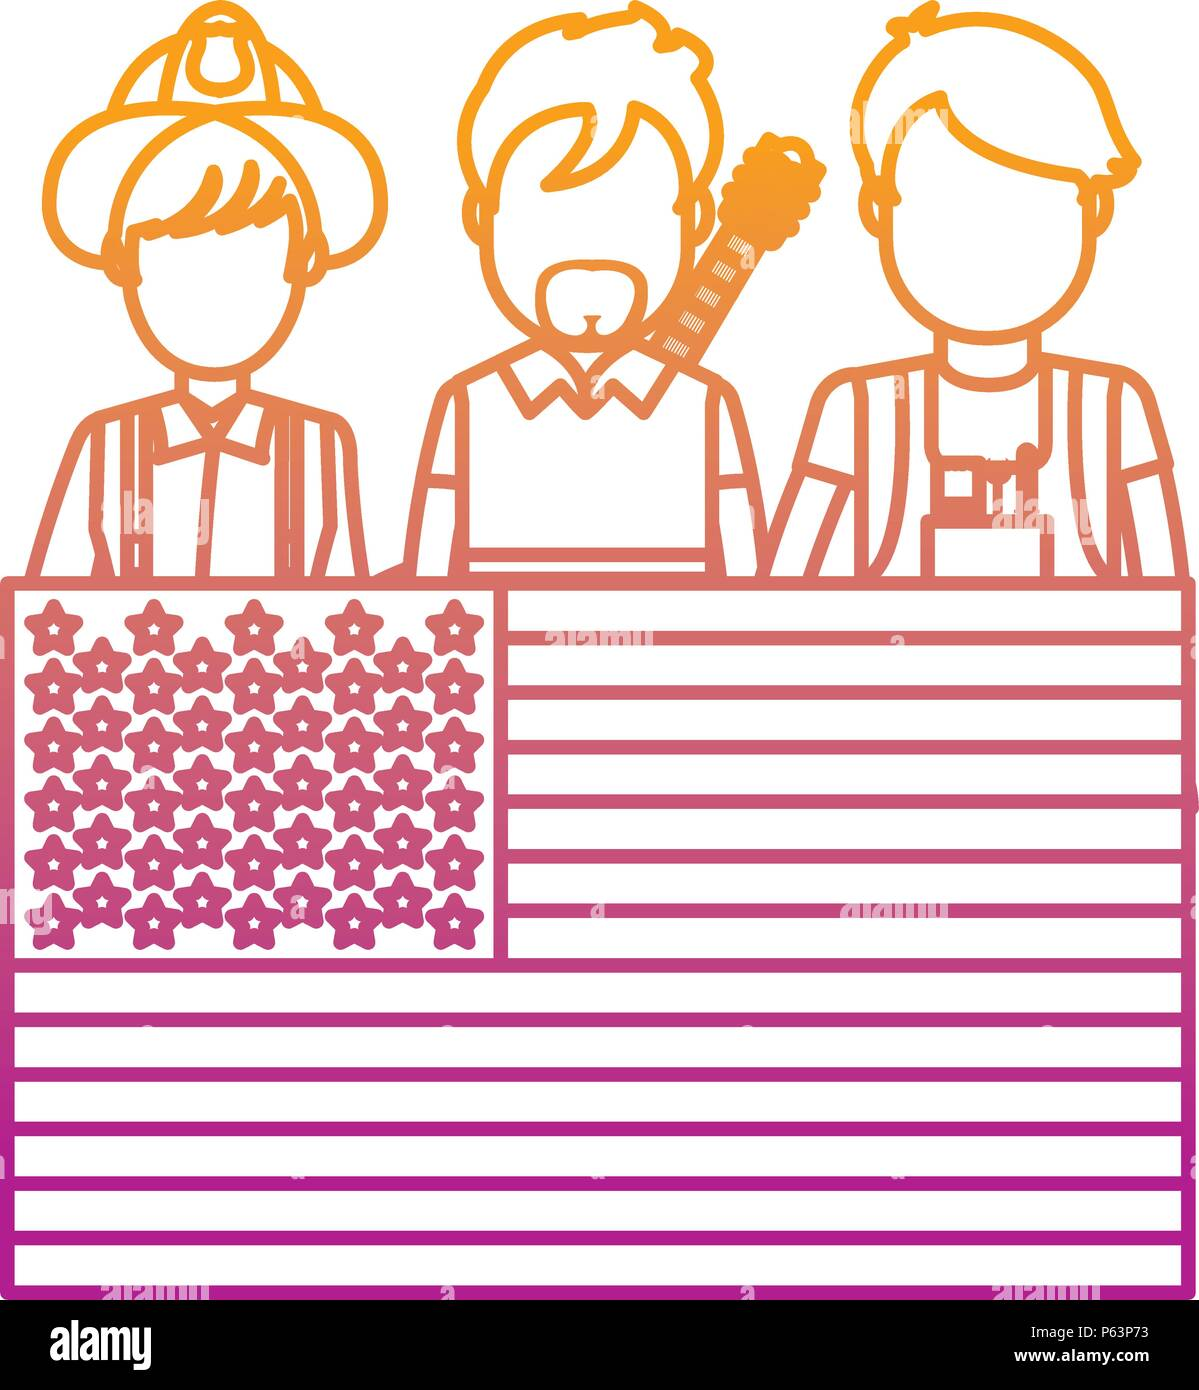 degraded line professional people careers with usa flag vector illustration - Stock Vector